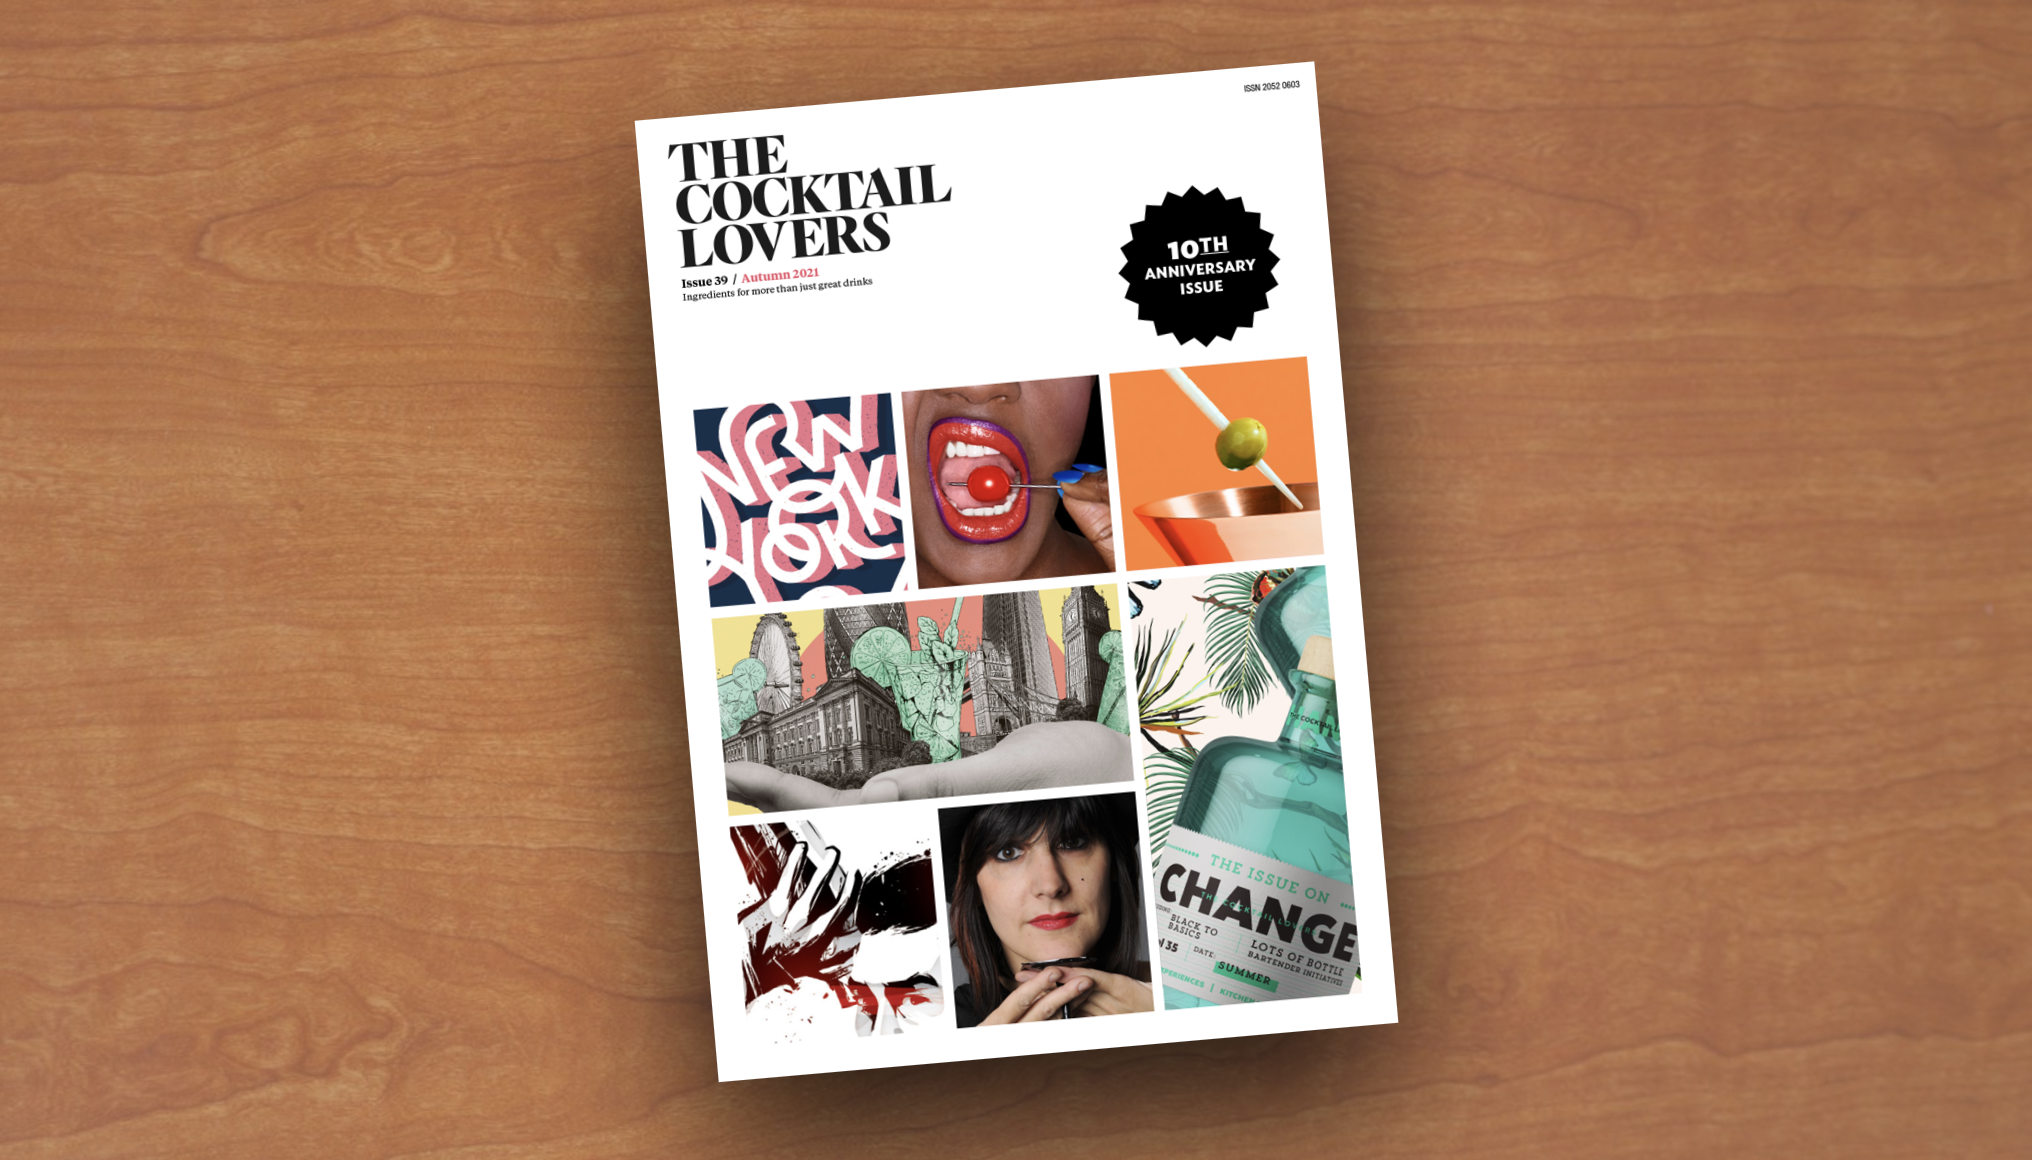 The_Cocktail_Lovers_Magazine_Issue_39_on_coffee_table